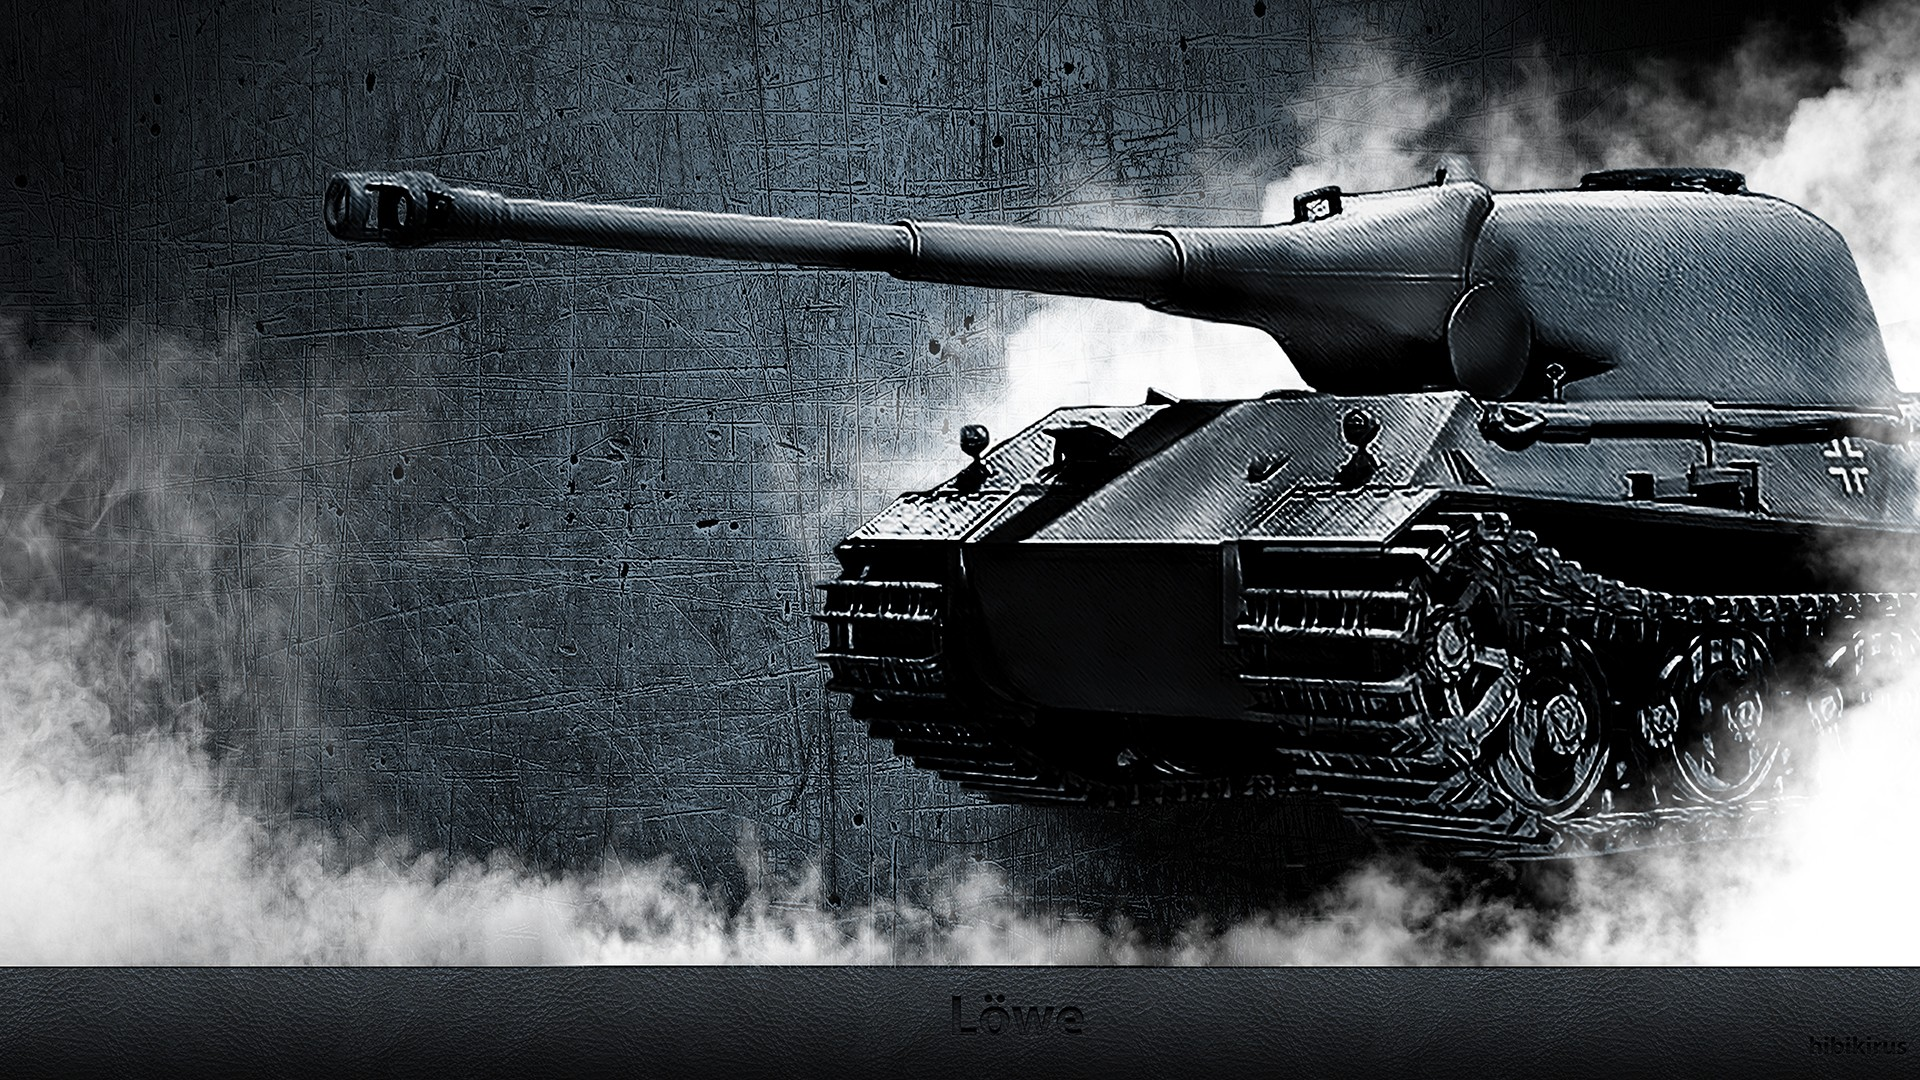 World Of Tanks Full HD Wallpaper and Background Image ...